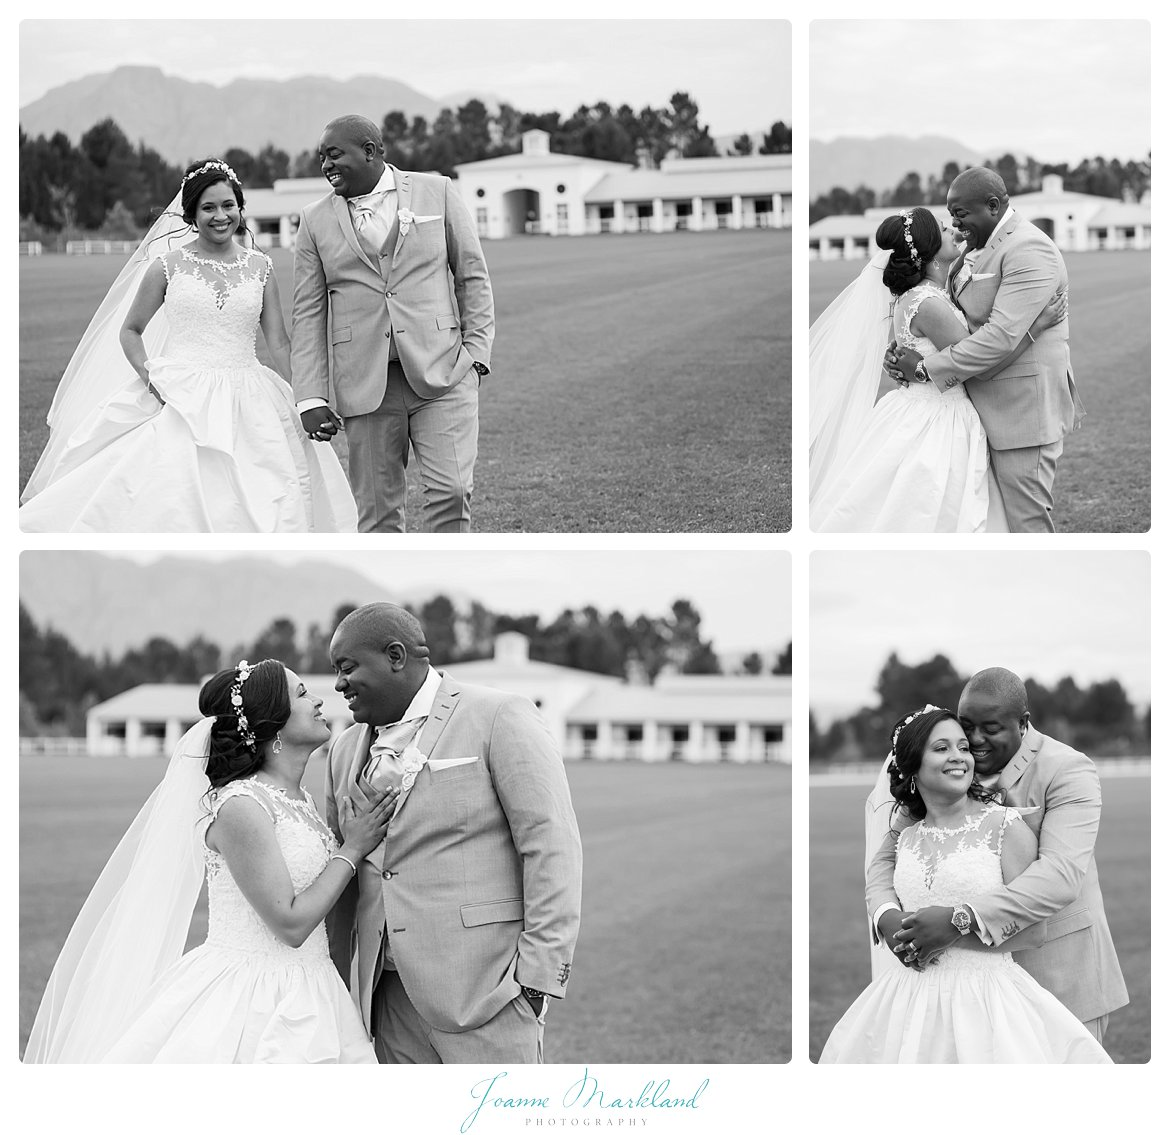 Val_de_vie_wedding_joanne_markland_photography_paarl-051